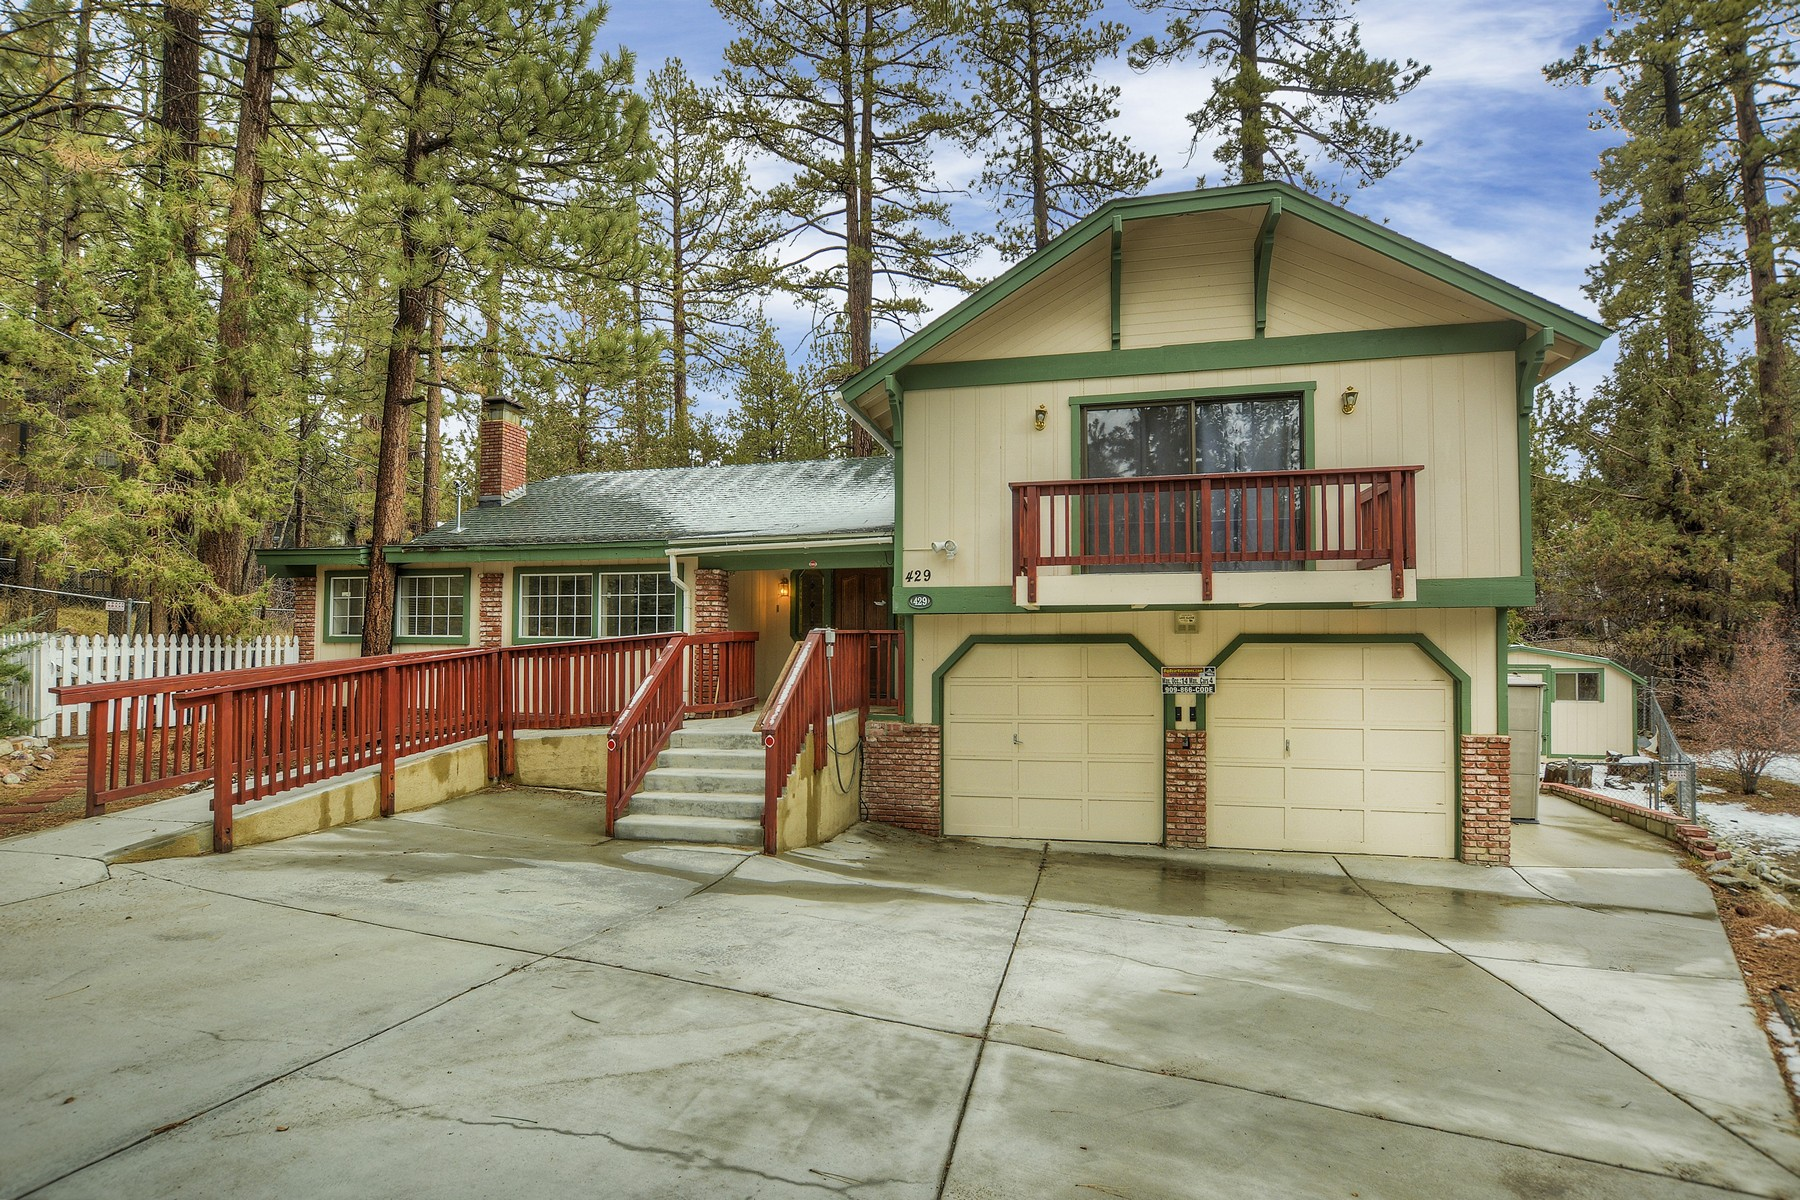 Maison unifamiliale pour l Vente à 429 Crater Lake Big Bear Lake, Californie, 92315 États-Unis